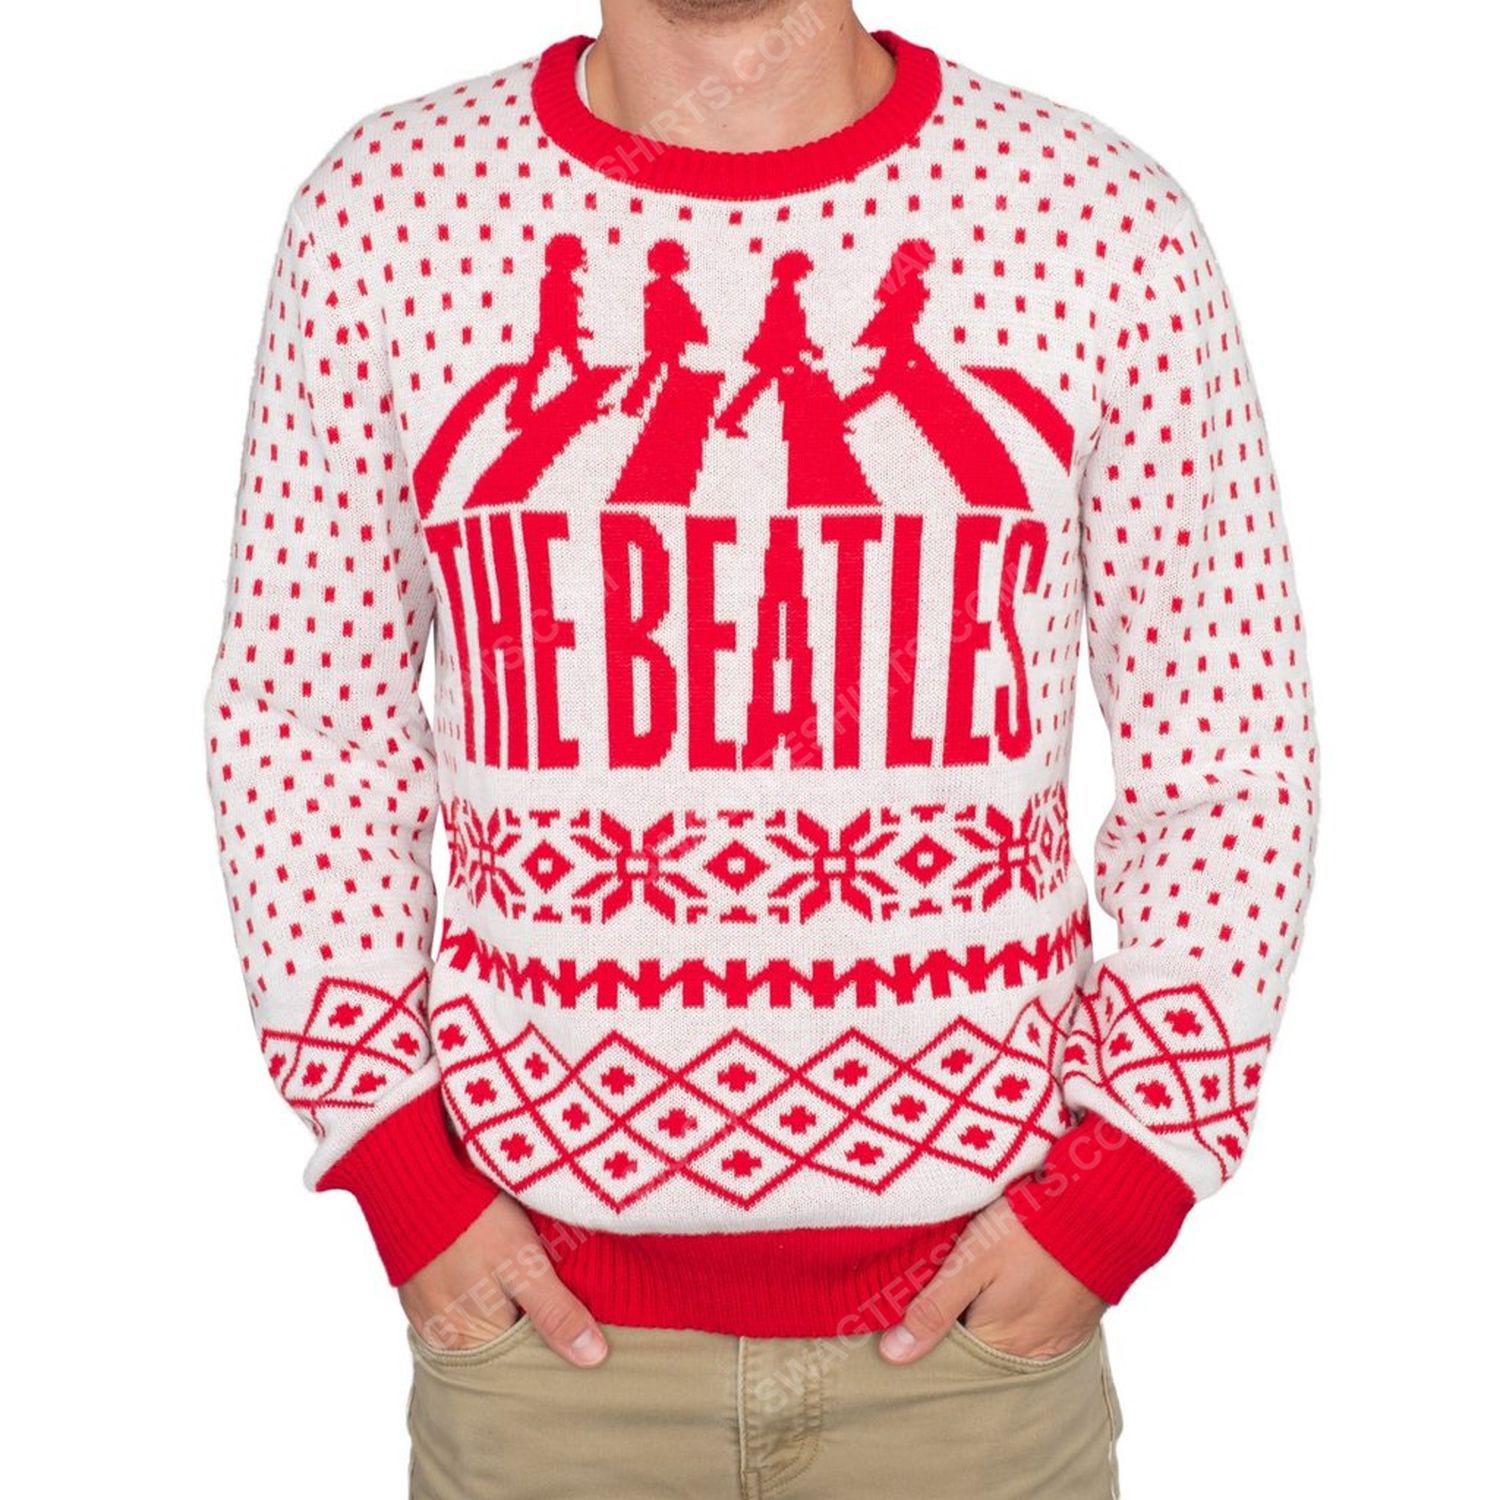 The beatles abbey road full print ugly christmas sweater 2 - Copy